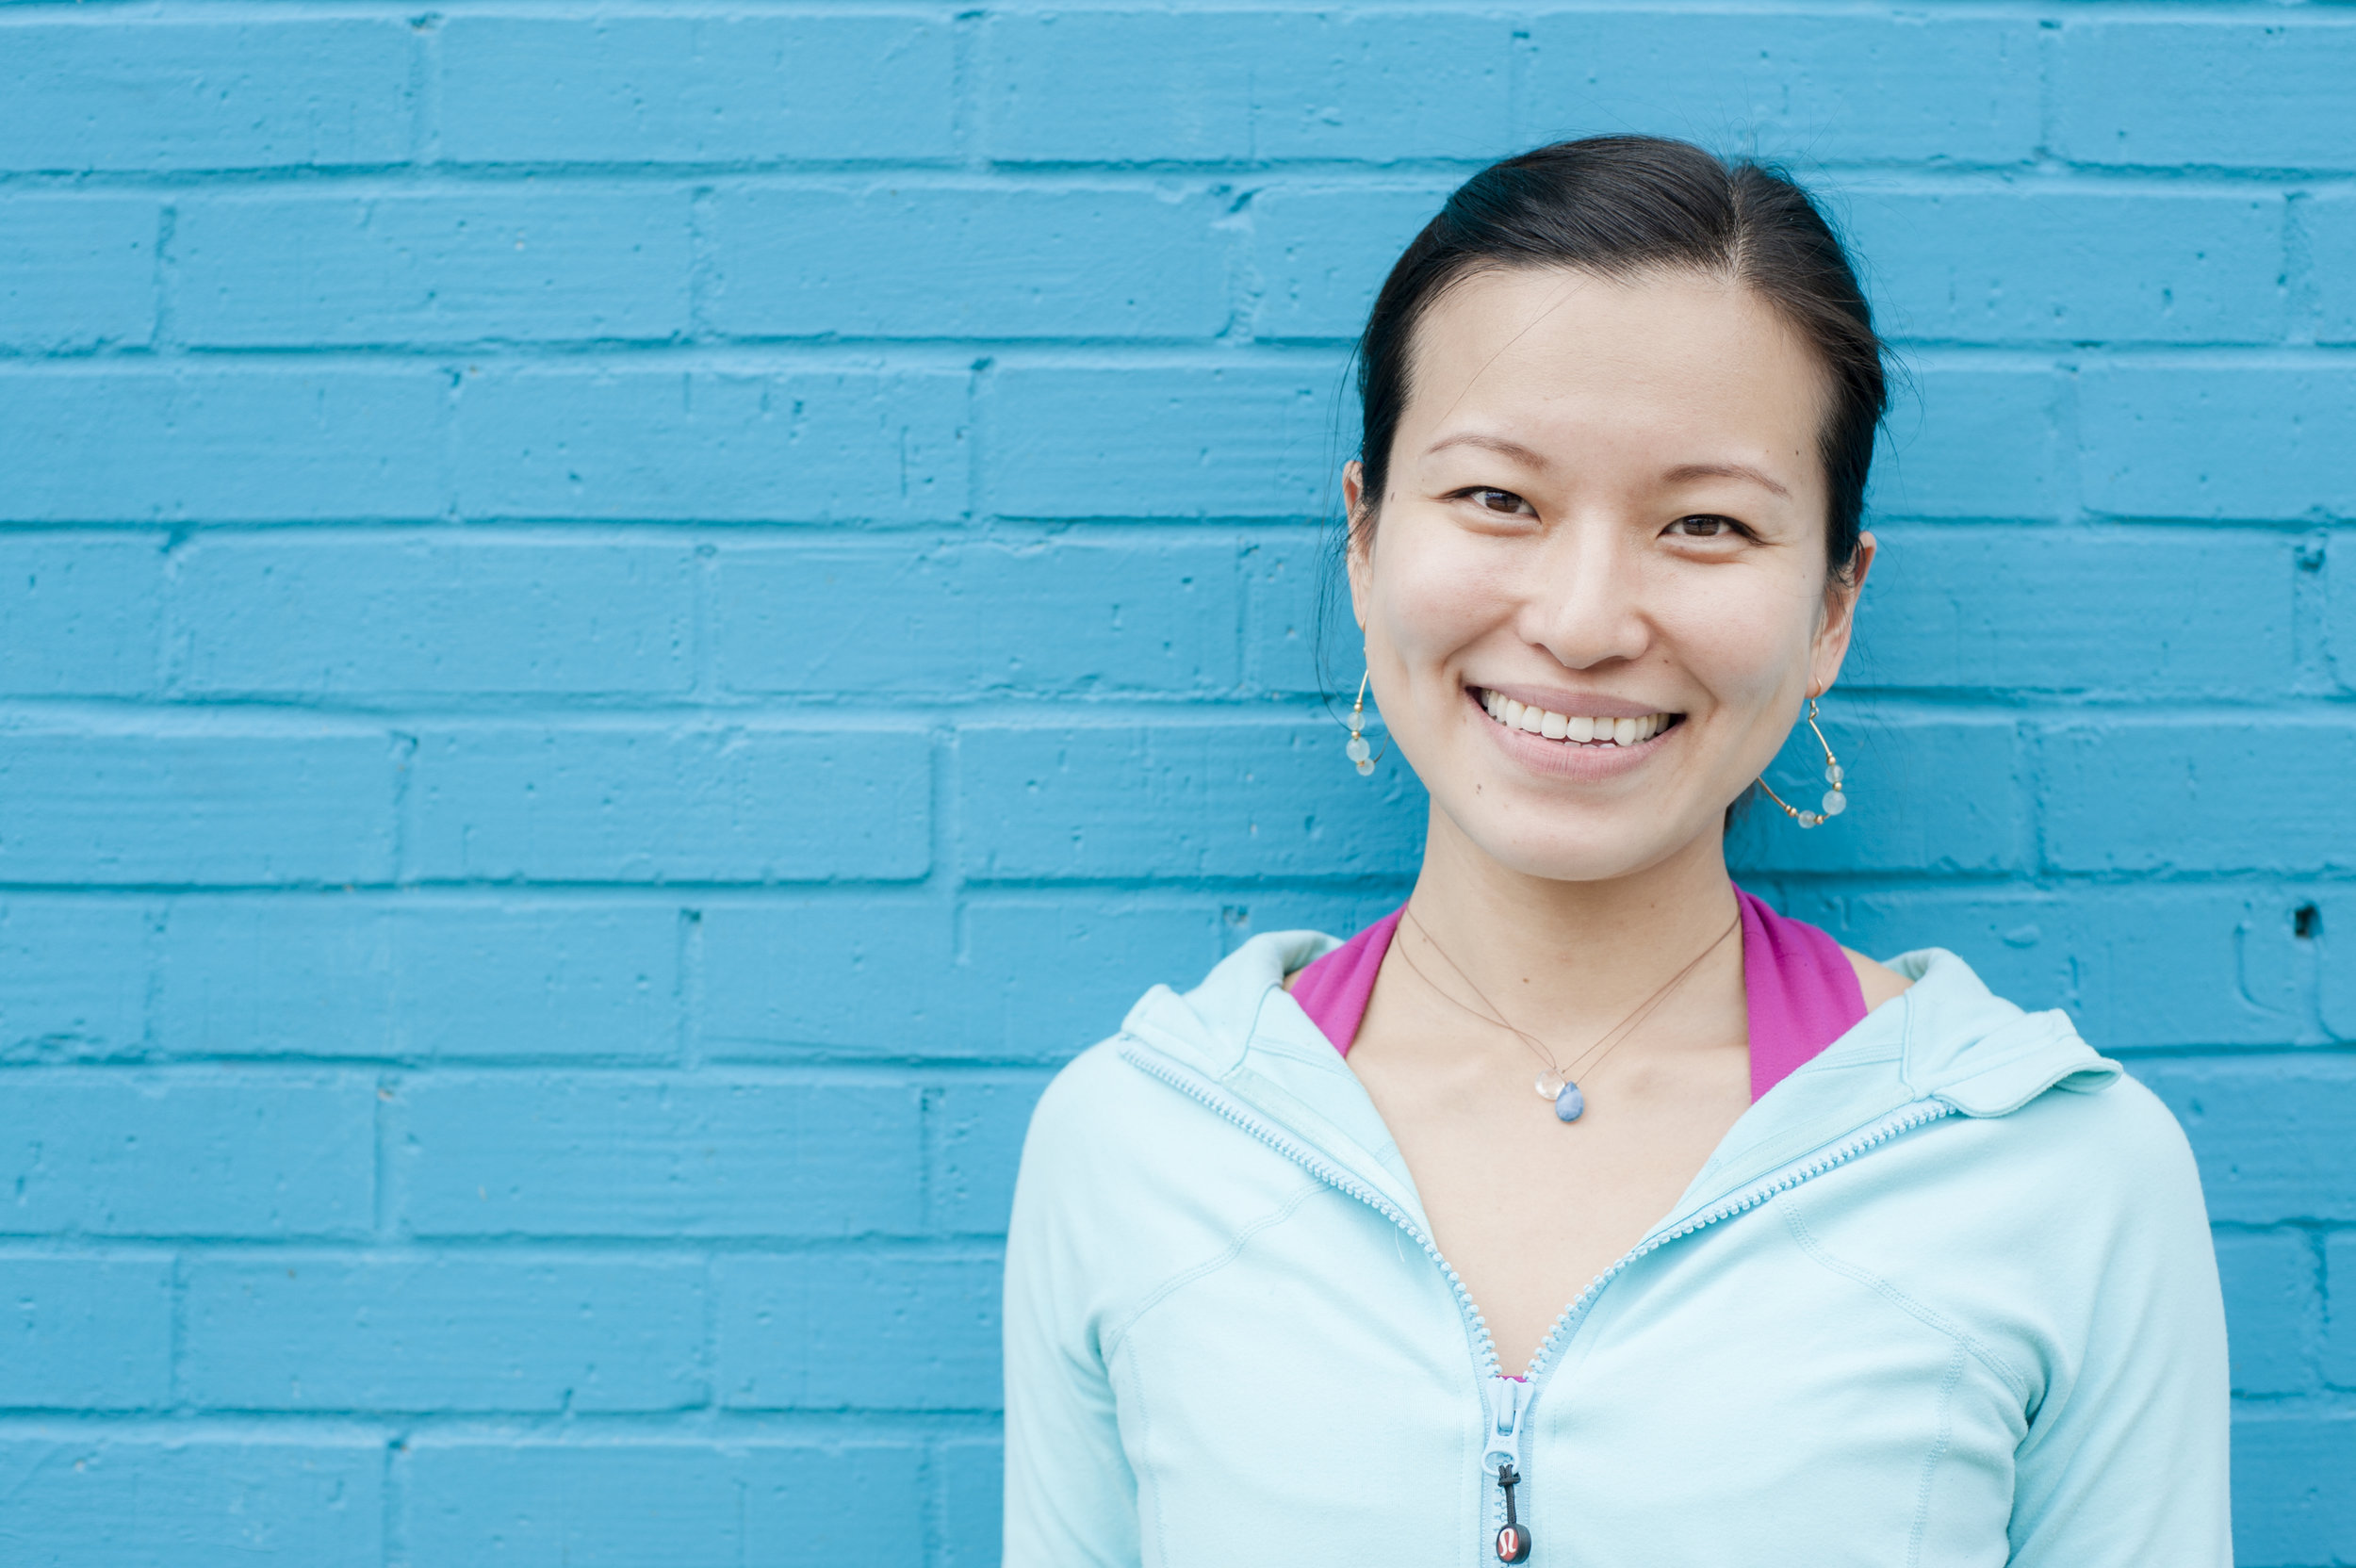 Gigi Mao    -  2019  Discover Nepal  ,  2018  Morocco Yoga & Art  & 2017  Yoga + Surf Nicaragua . Gigi teaches alignment-based flow in Austin, TX and believes yoga & travel are means of connection and growth.